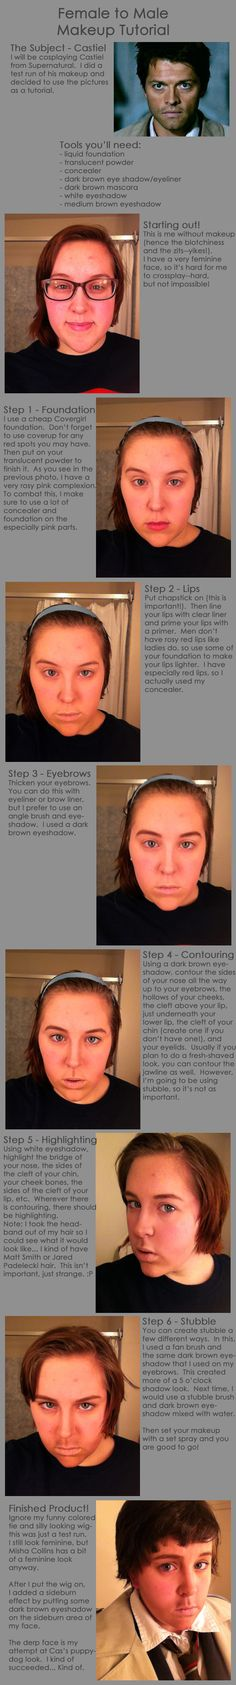 Female to Male Castiel Makeup Tutorial by sunkist3208.deviantart.com on @deviantART Pinning because of stubble.